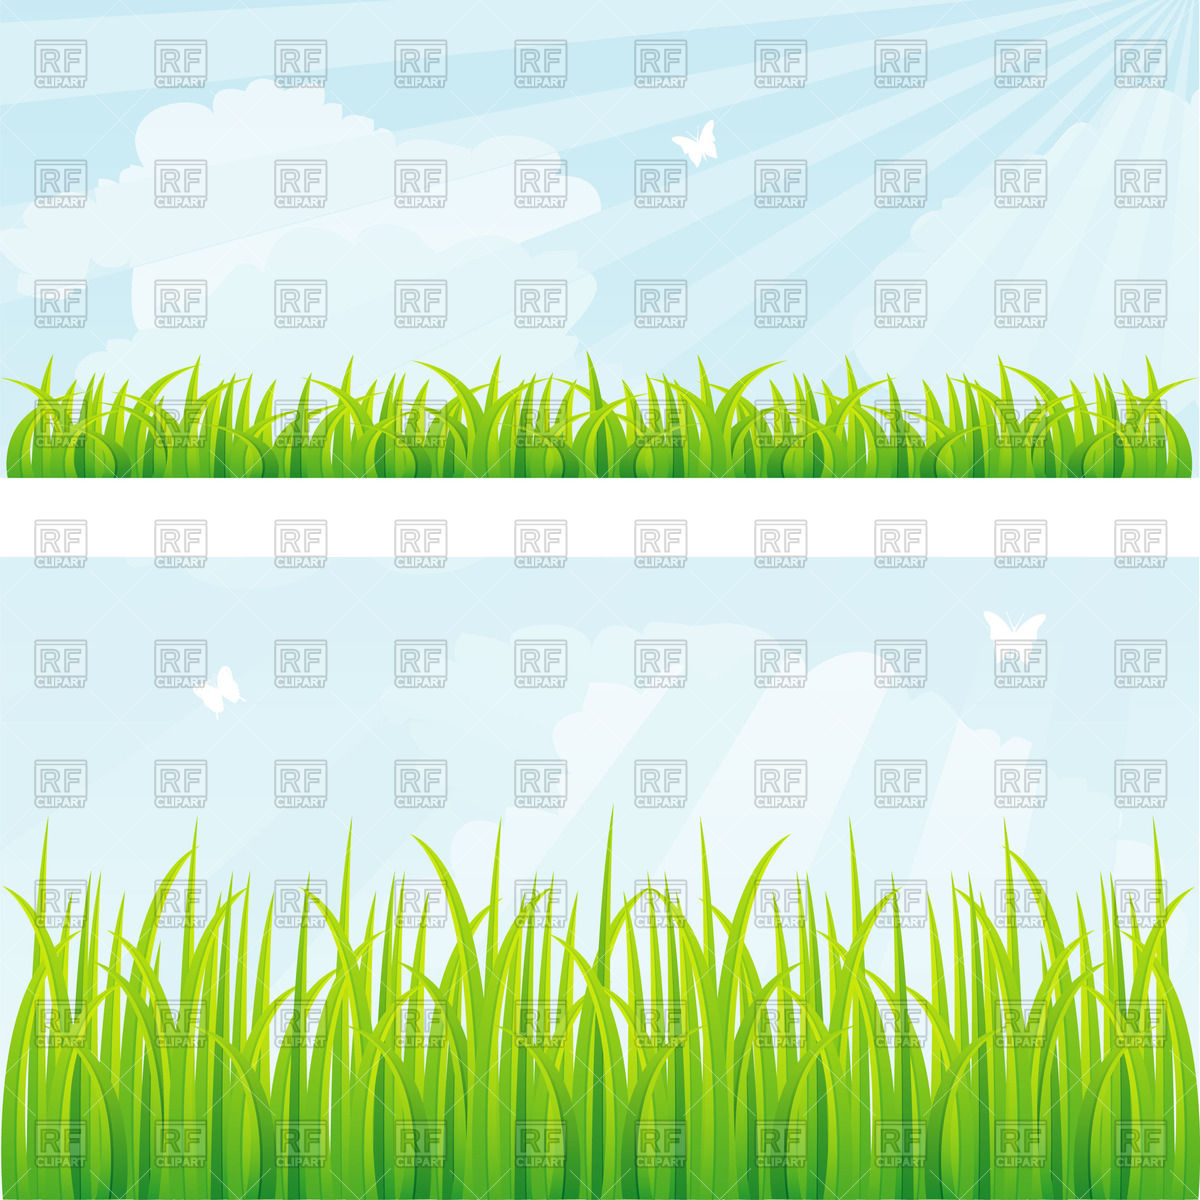 Summer grass and sun rays Vector Image #58456.